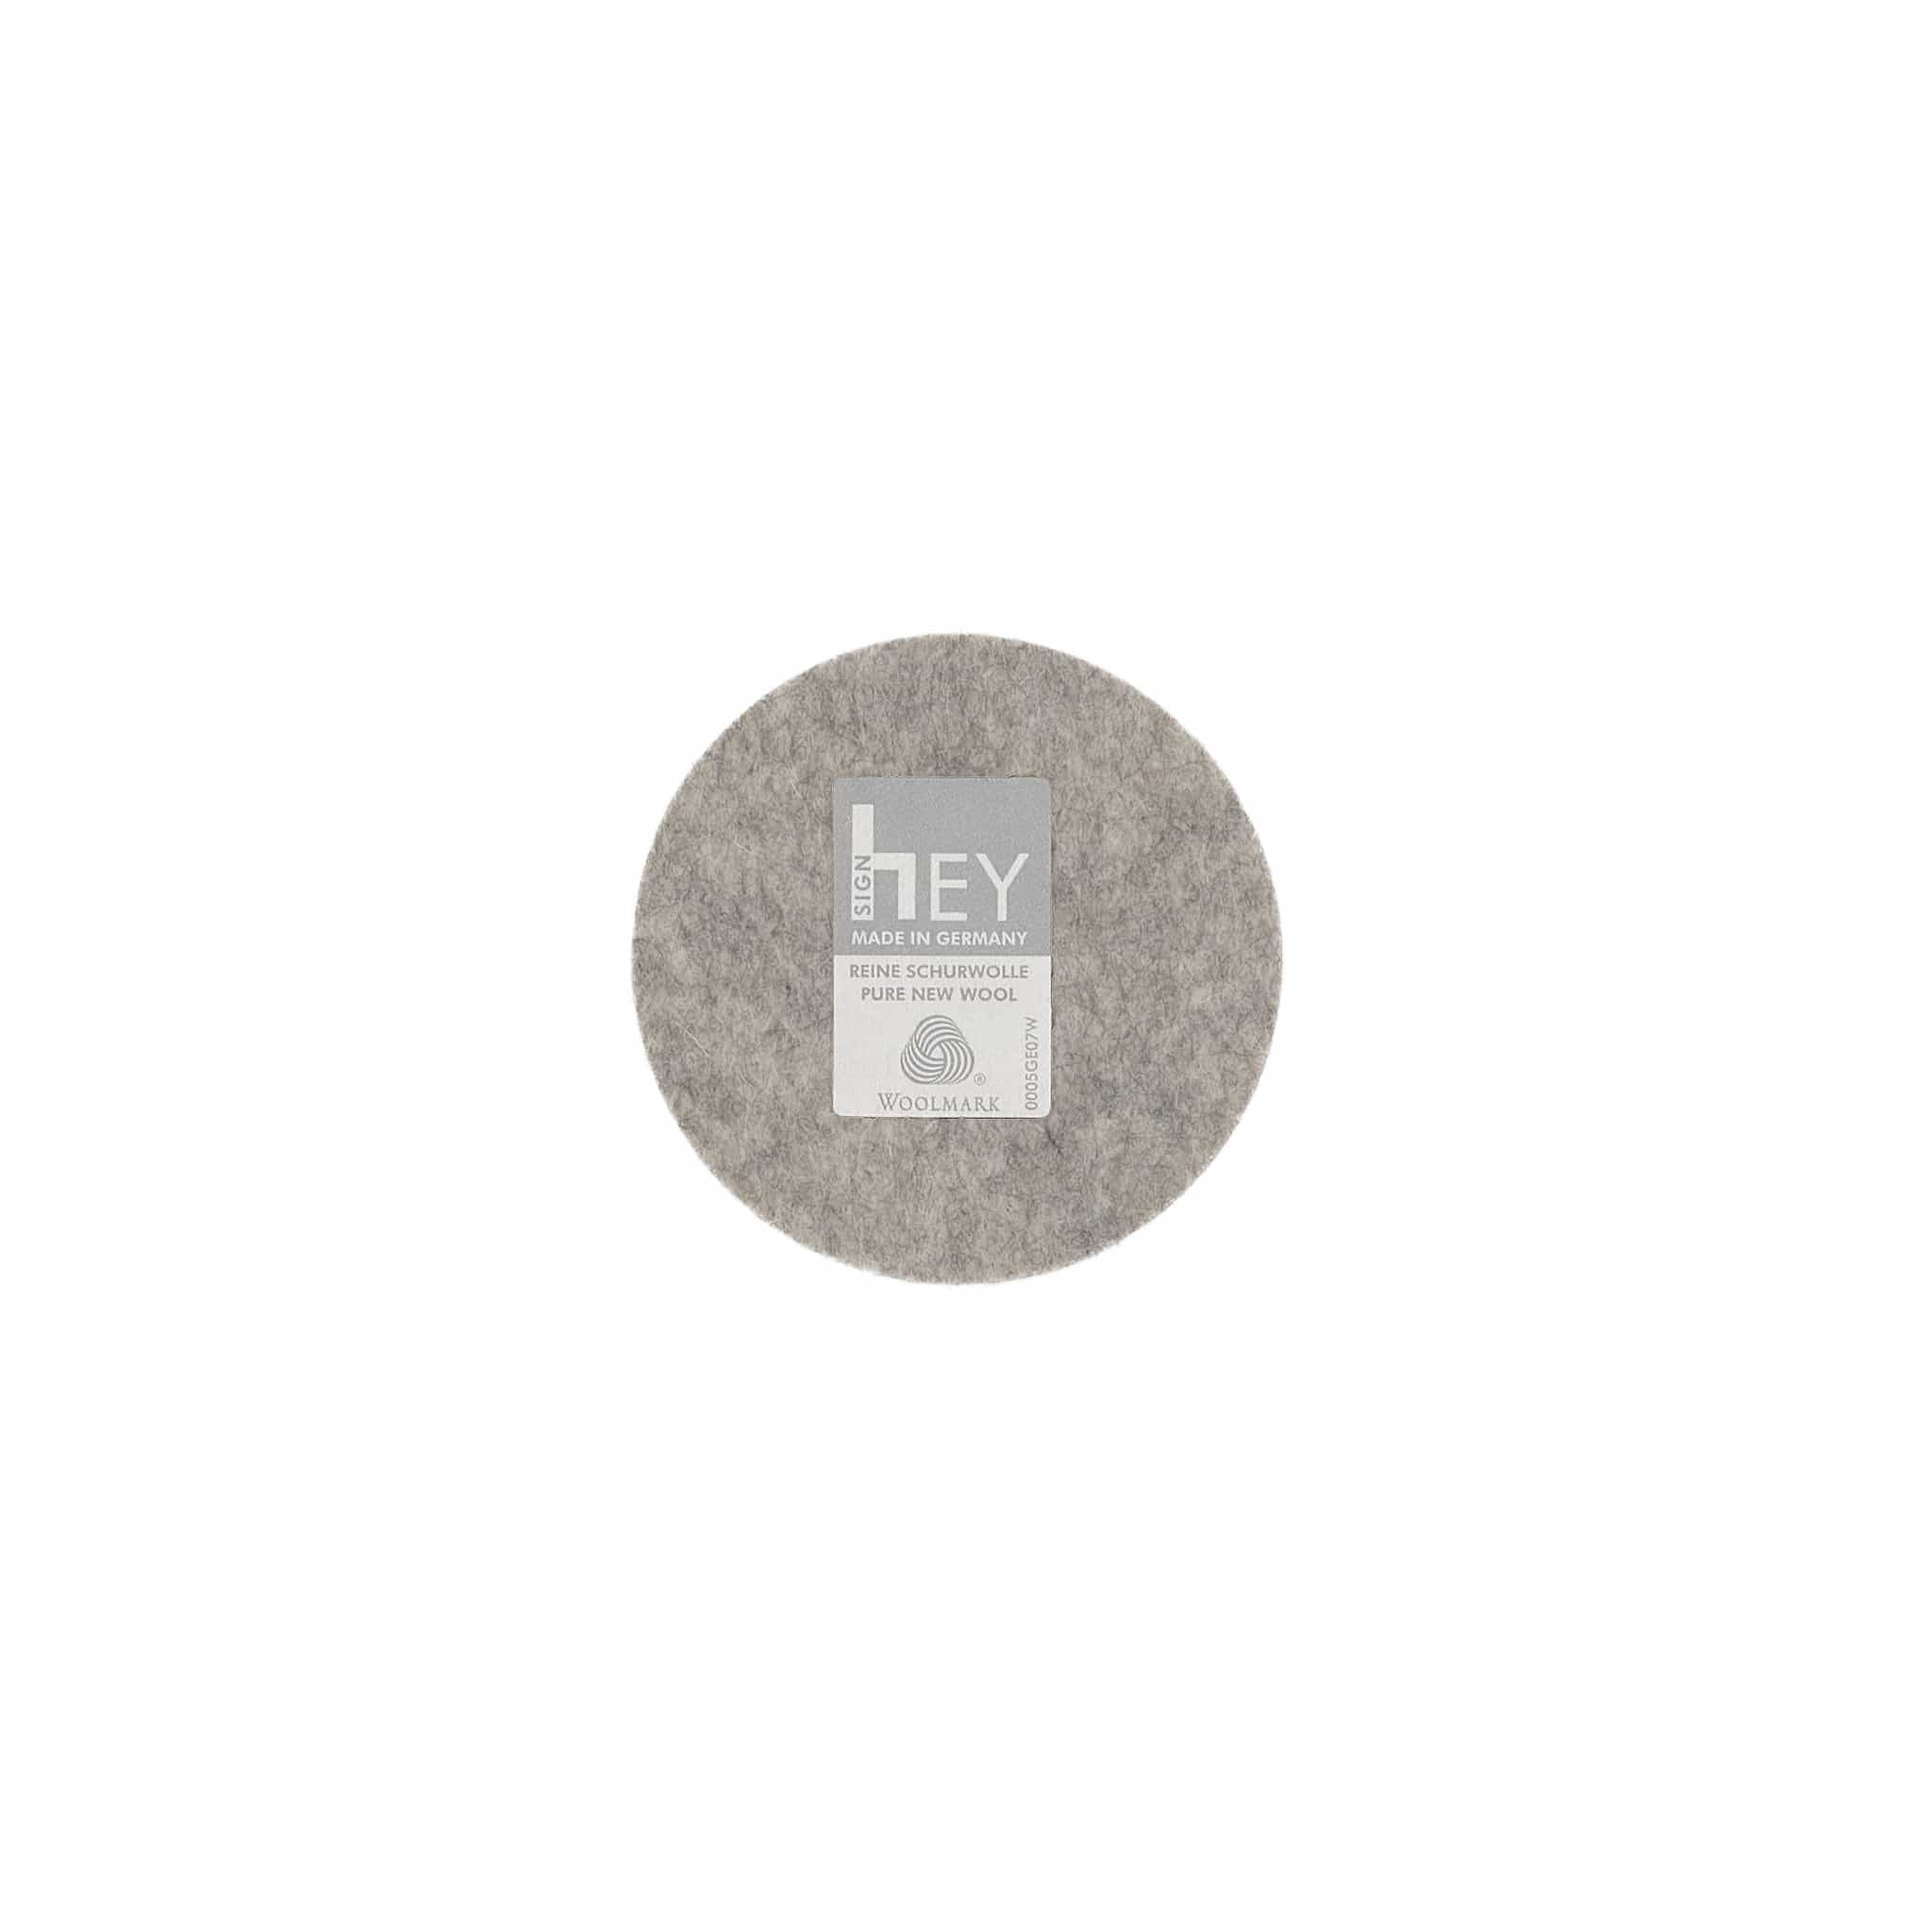 Round Felt Coaster in Light-Grey by Hey-Sign 300150907 looking at Back